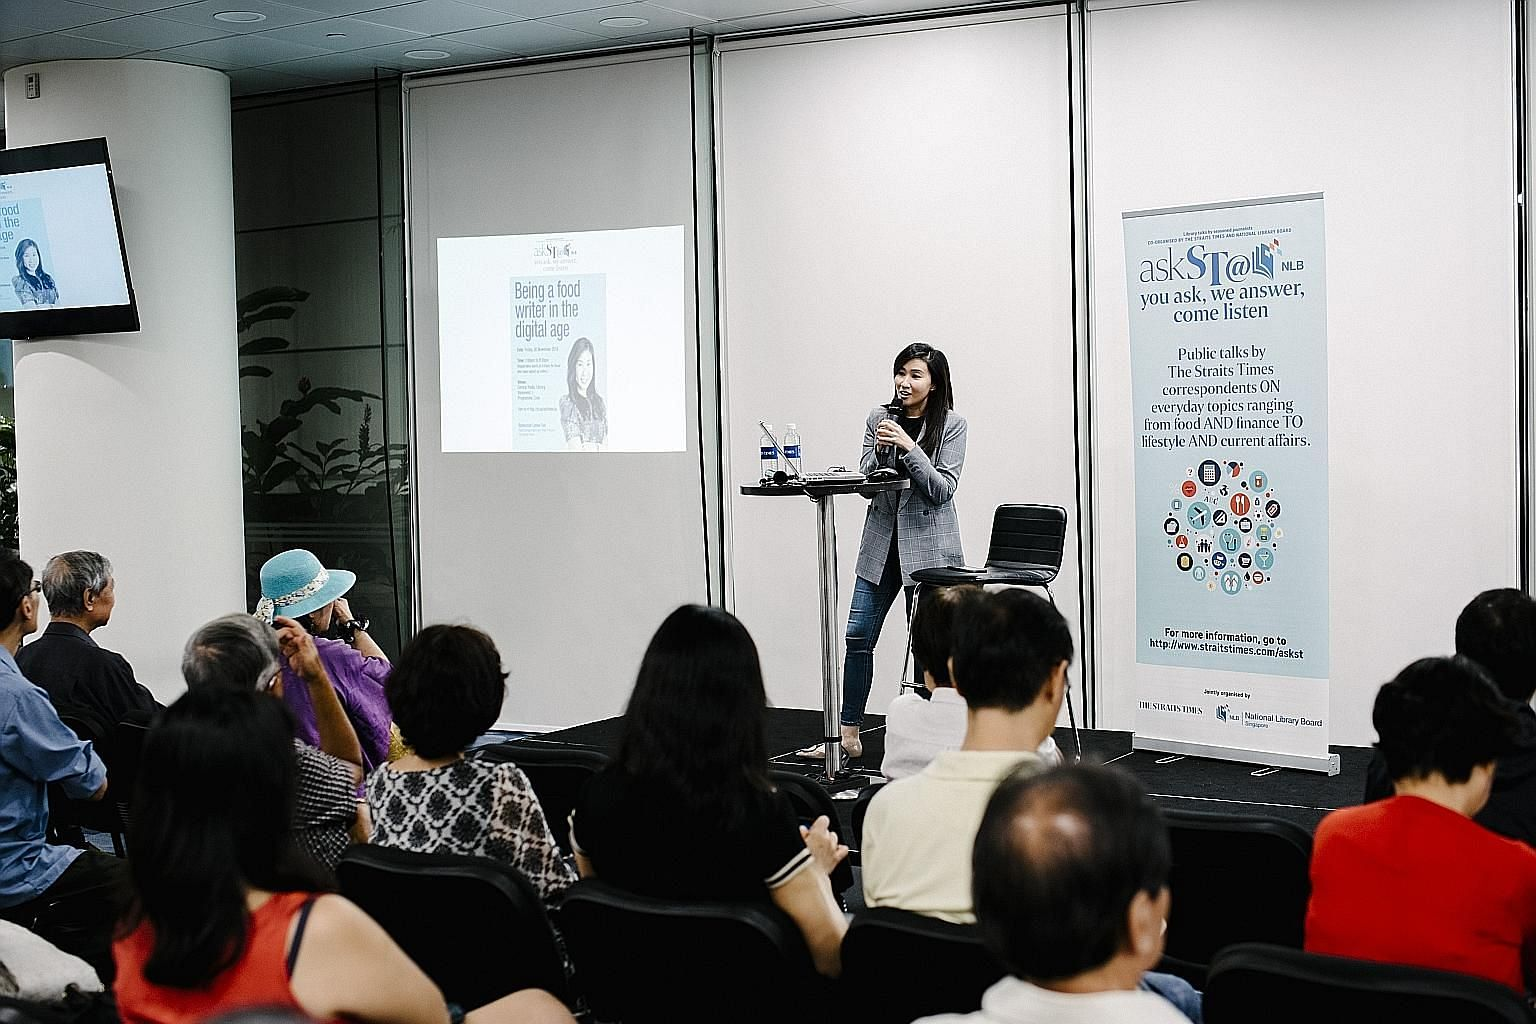 Straits Times food writer Rebecca Lynne Tan sharing her experiences with the audience during her talk at the Central Public Library on Friday.